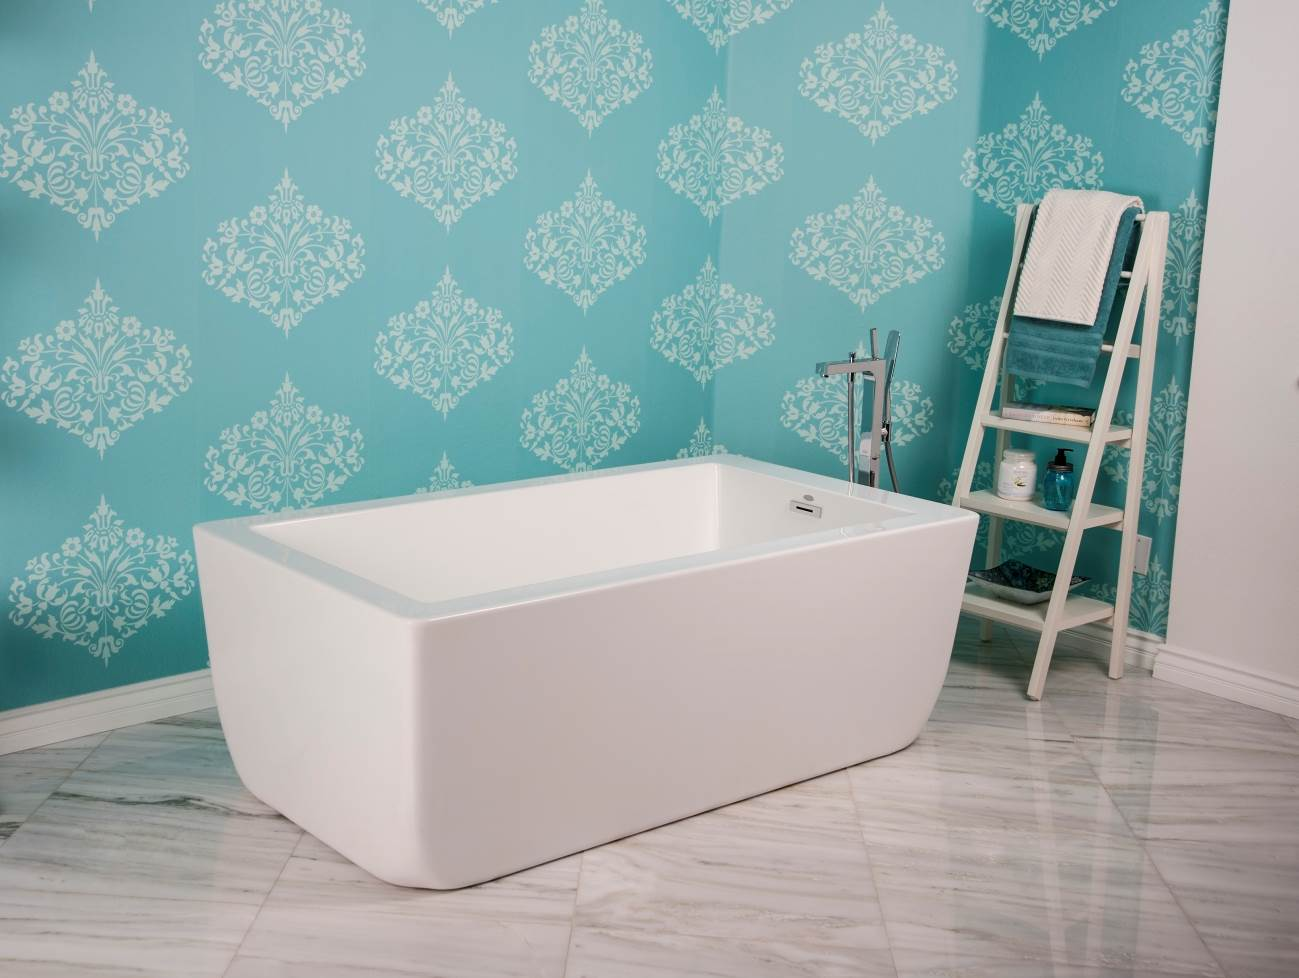 Momentum Grows for Showers, Freestanding Tubs in Master Baths ...